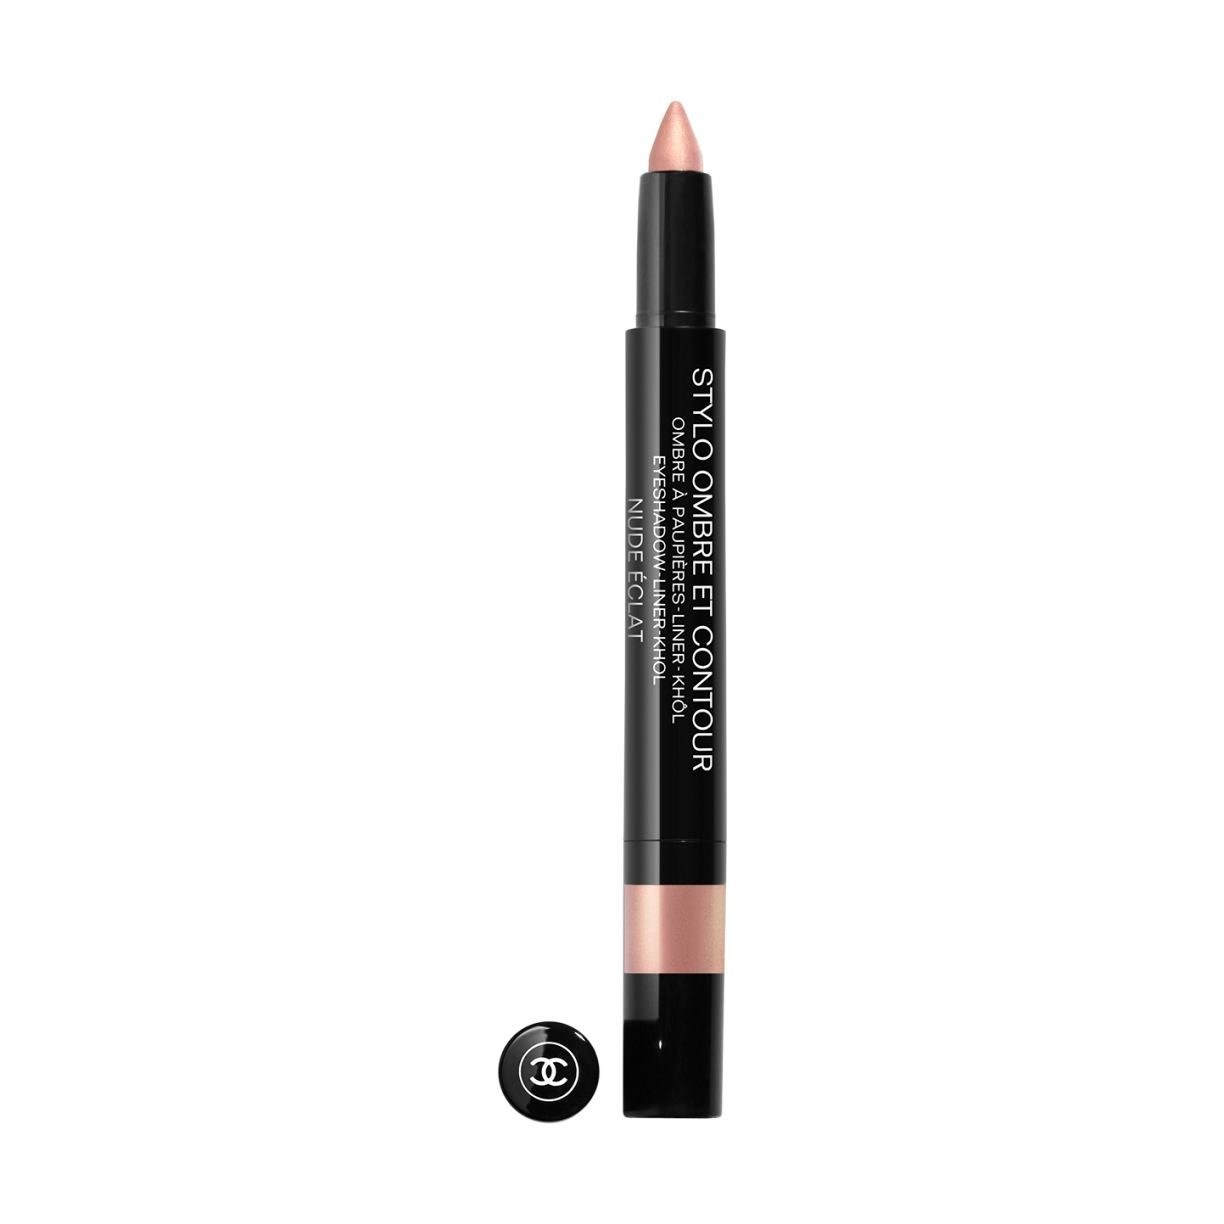 STYLO OMBRE ET CONTOUR WITH ITS MEDIUM-THICK TIP, STYLO OMBRE ET CONTOUR MAY BE USED AS A KOHL, LINER OR EYESHADOW. IN A FEW STROKES, THIS 3-IN-1 PEN ADORNS YOUR EYES ACCORDING TO YOUR WHIMS. 06 NUDE ÉCLAT 0.8G